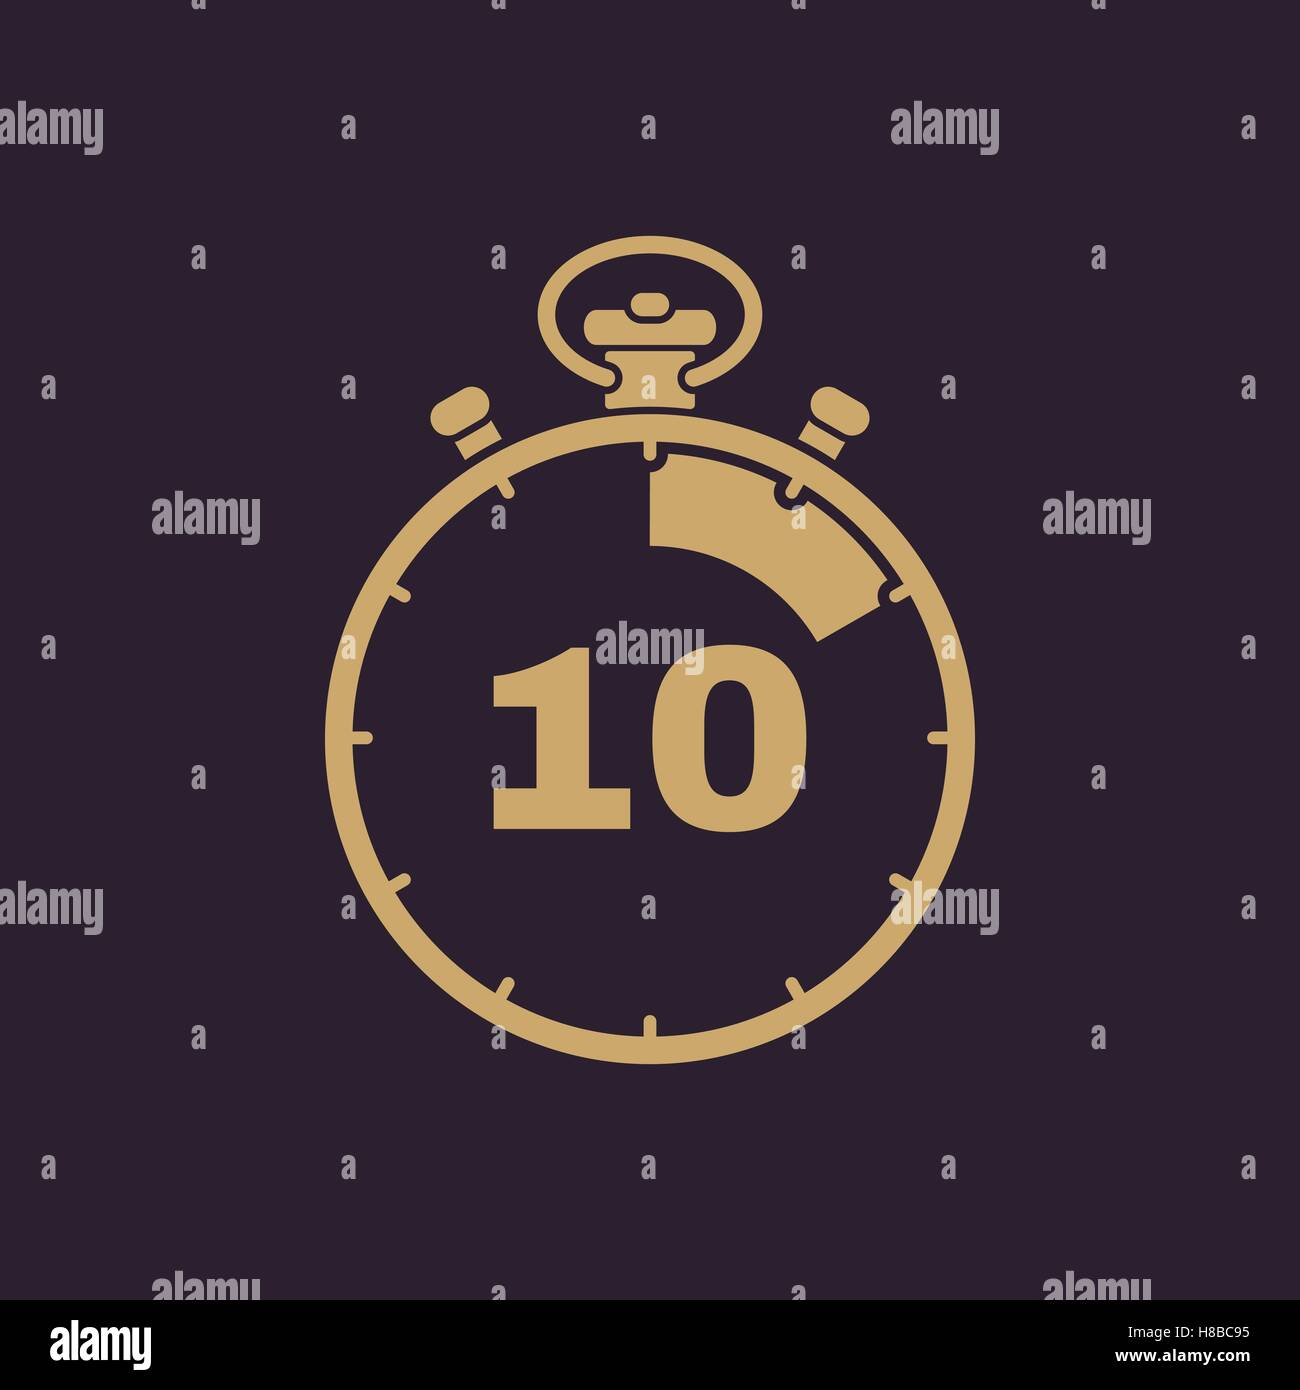 the 10 seconds minutes stopwatch icon clock and watch timer countdown